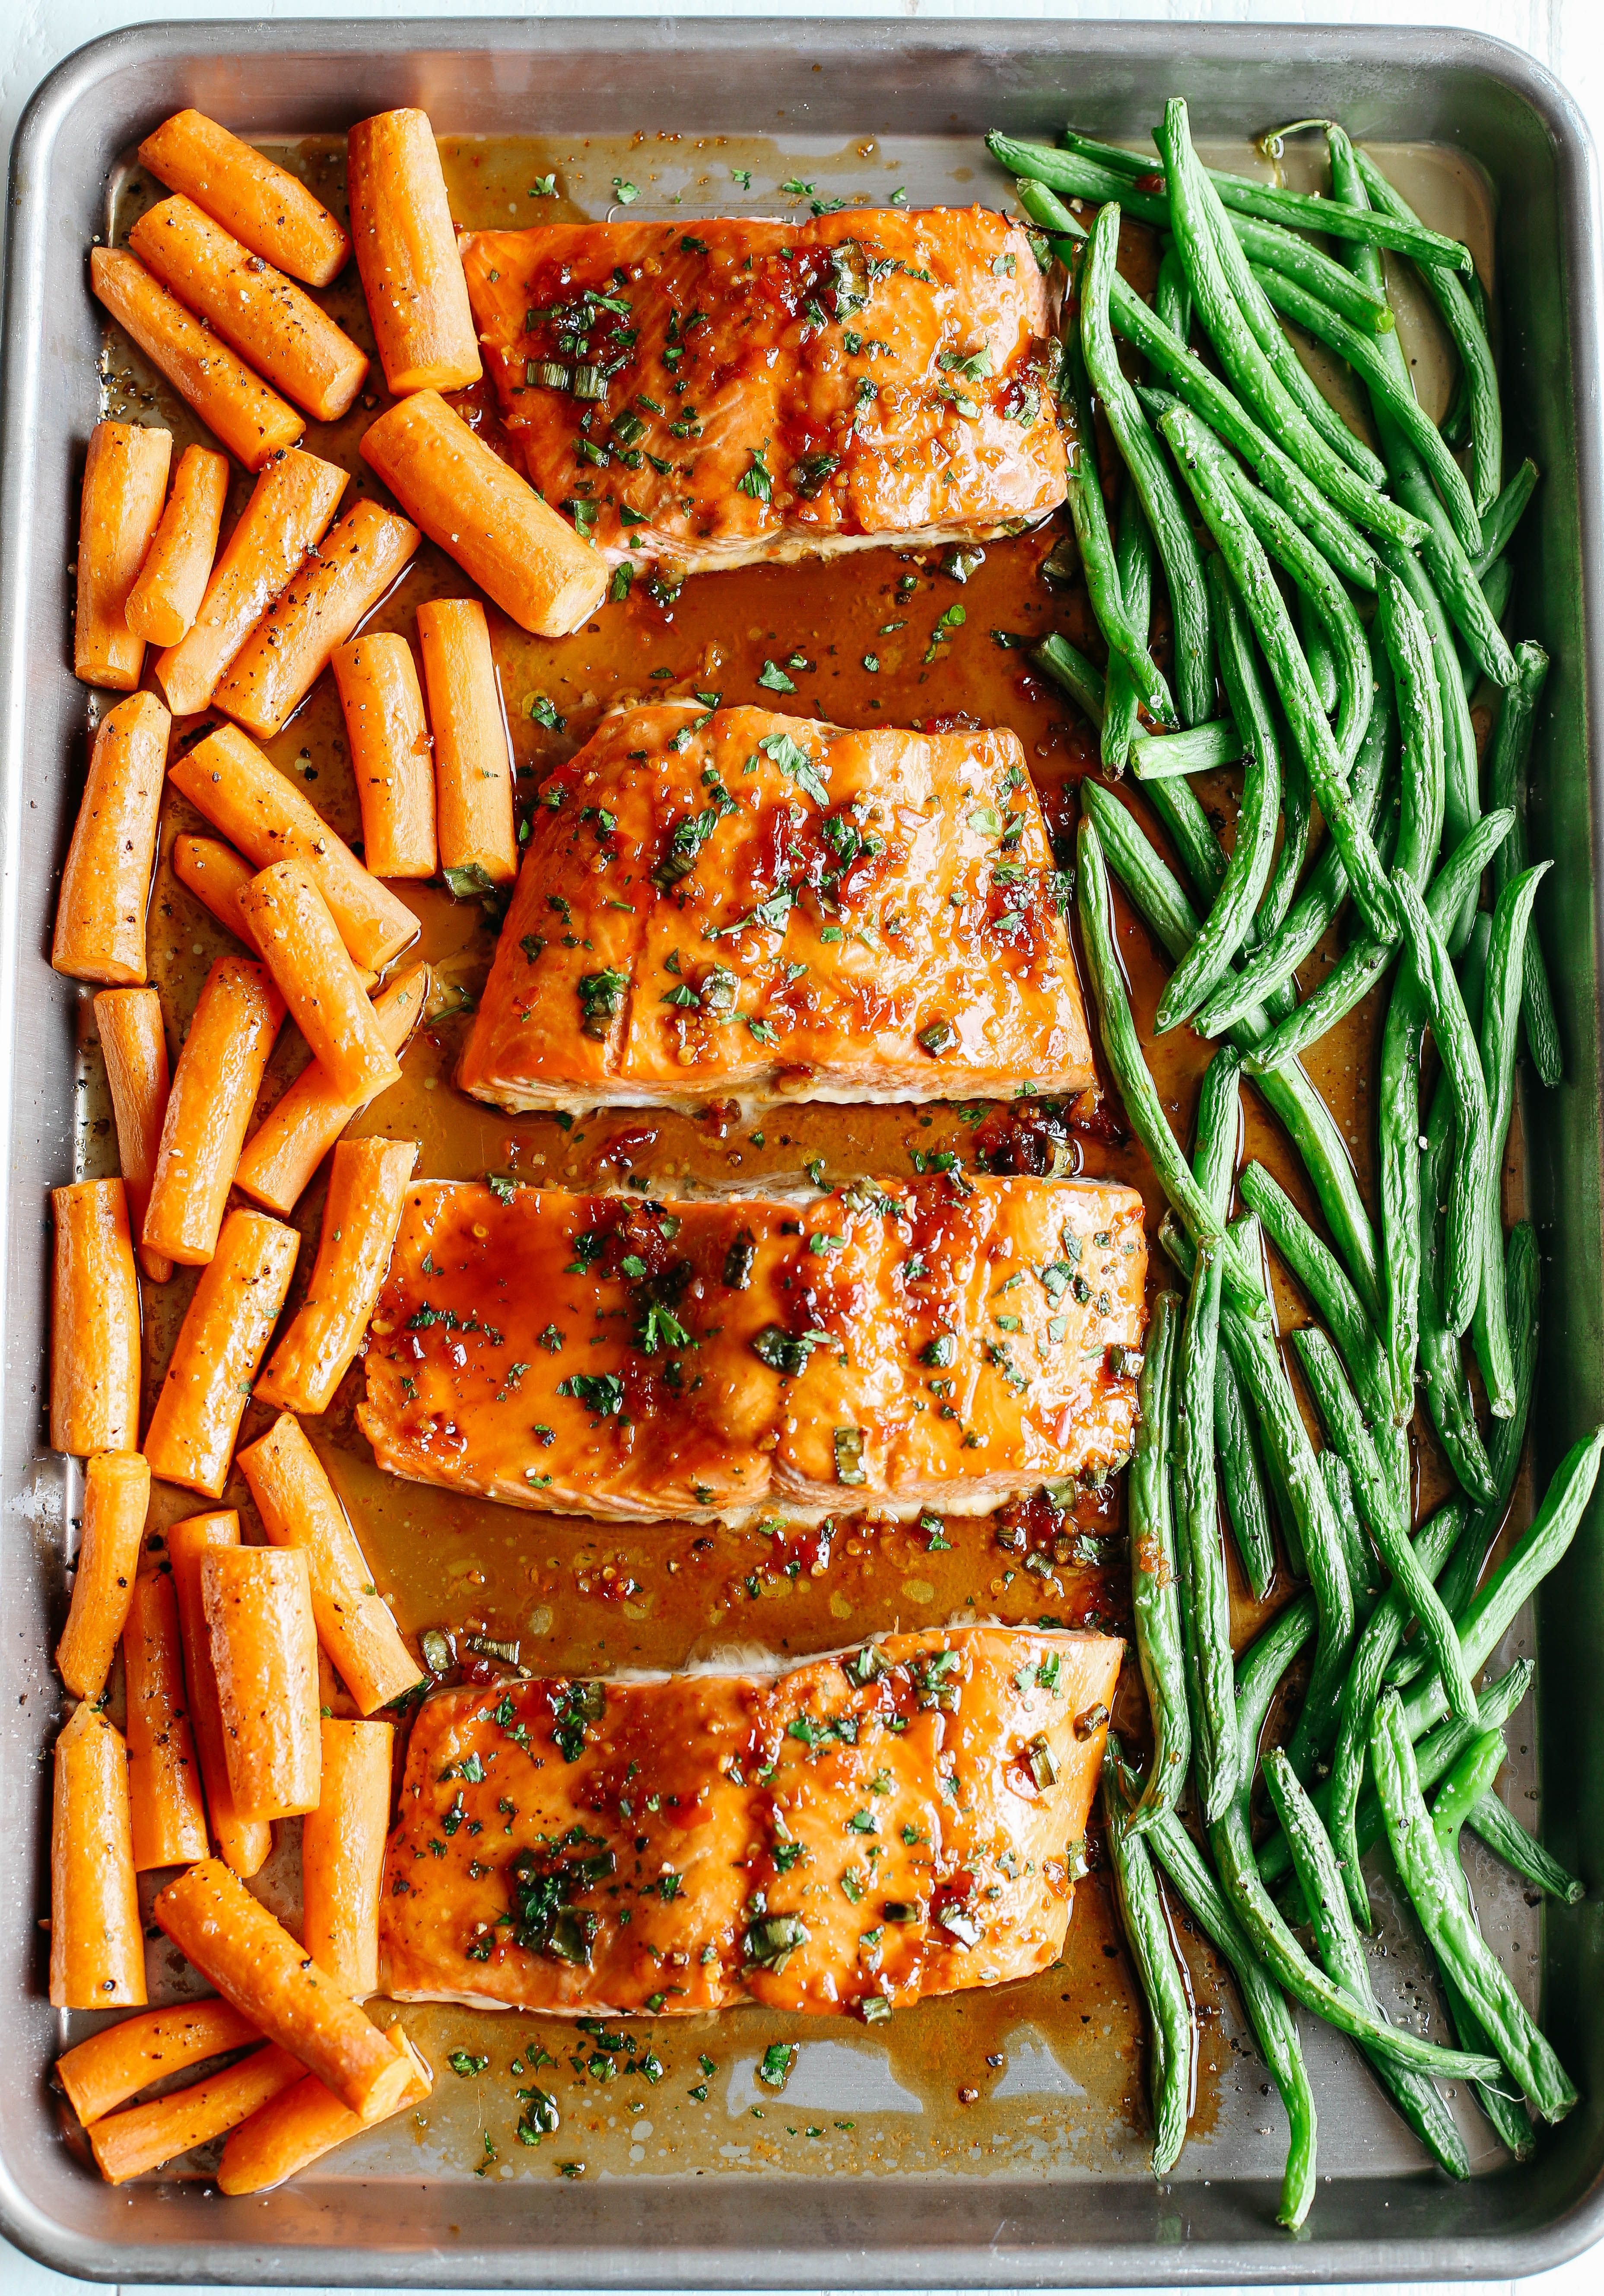 This Sheet Pan Ginger Soy Glazed Salmon makes the perfect weeknight dinner that's quick, healthy and easily made all on one pan!